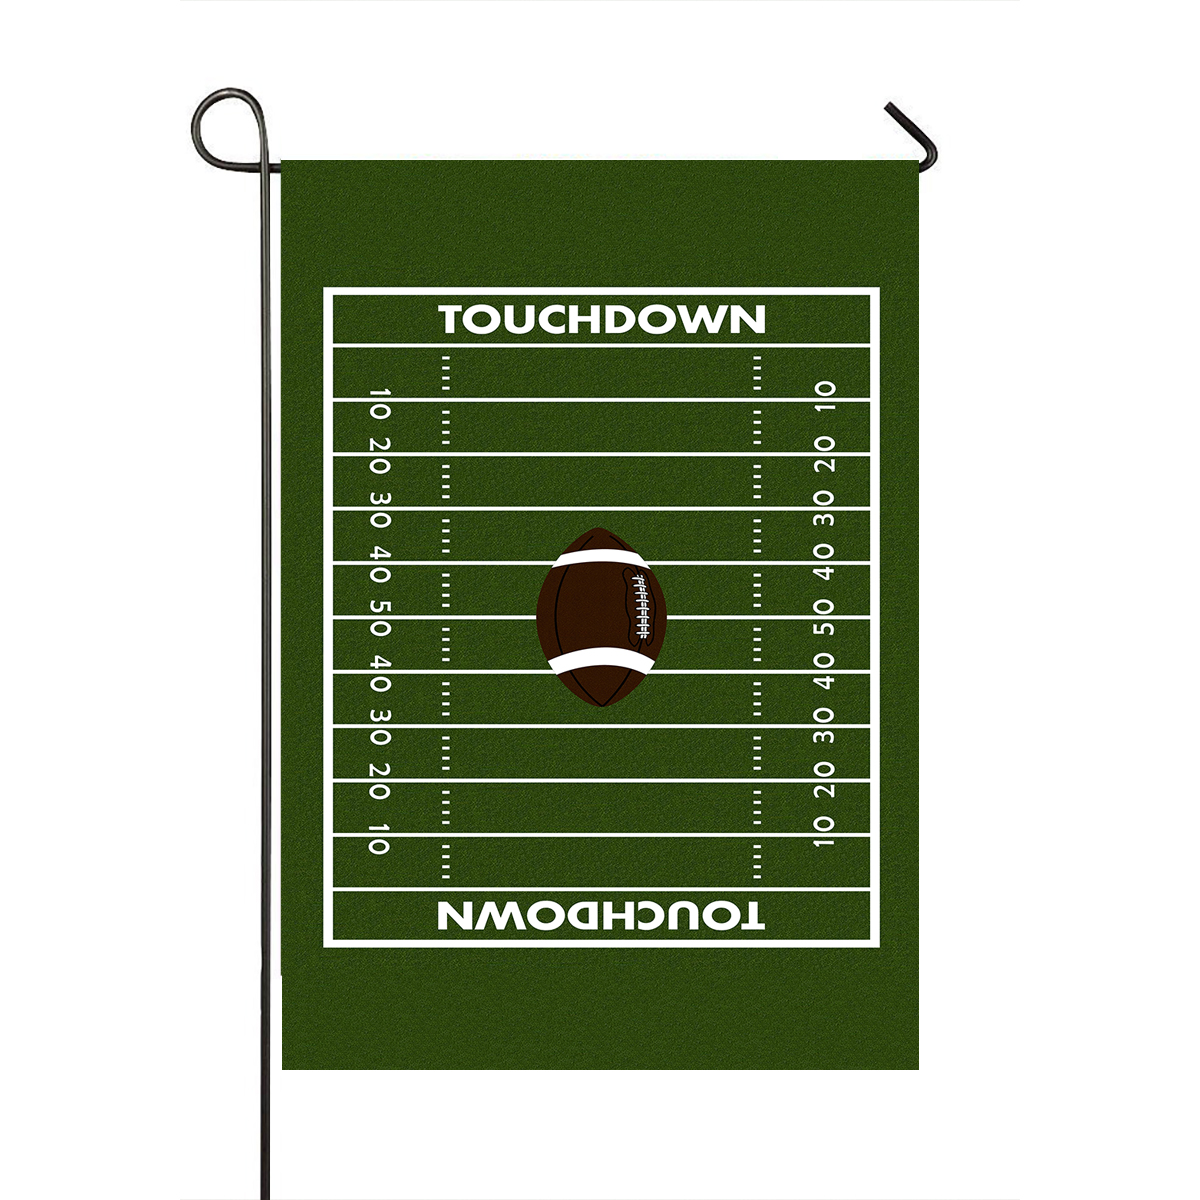 GCKG Football Ground Garden Flag,Football Ground Home Outdoor Garden Flag House Banner 12x18 inch - image 1 of 1